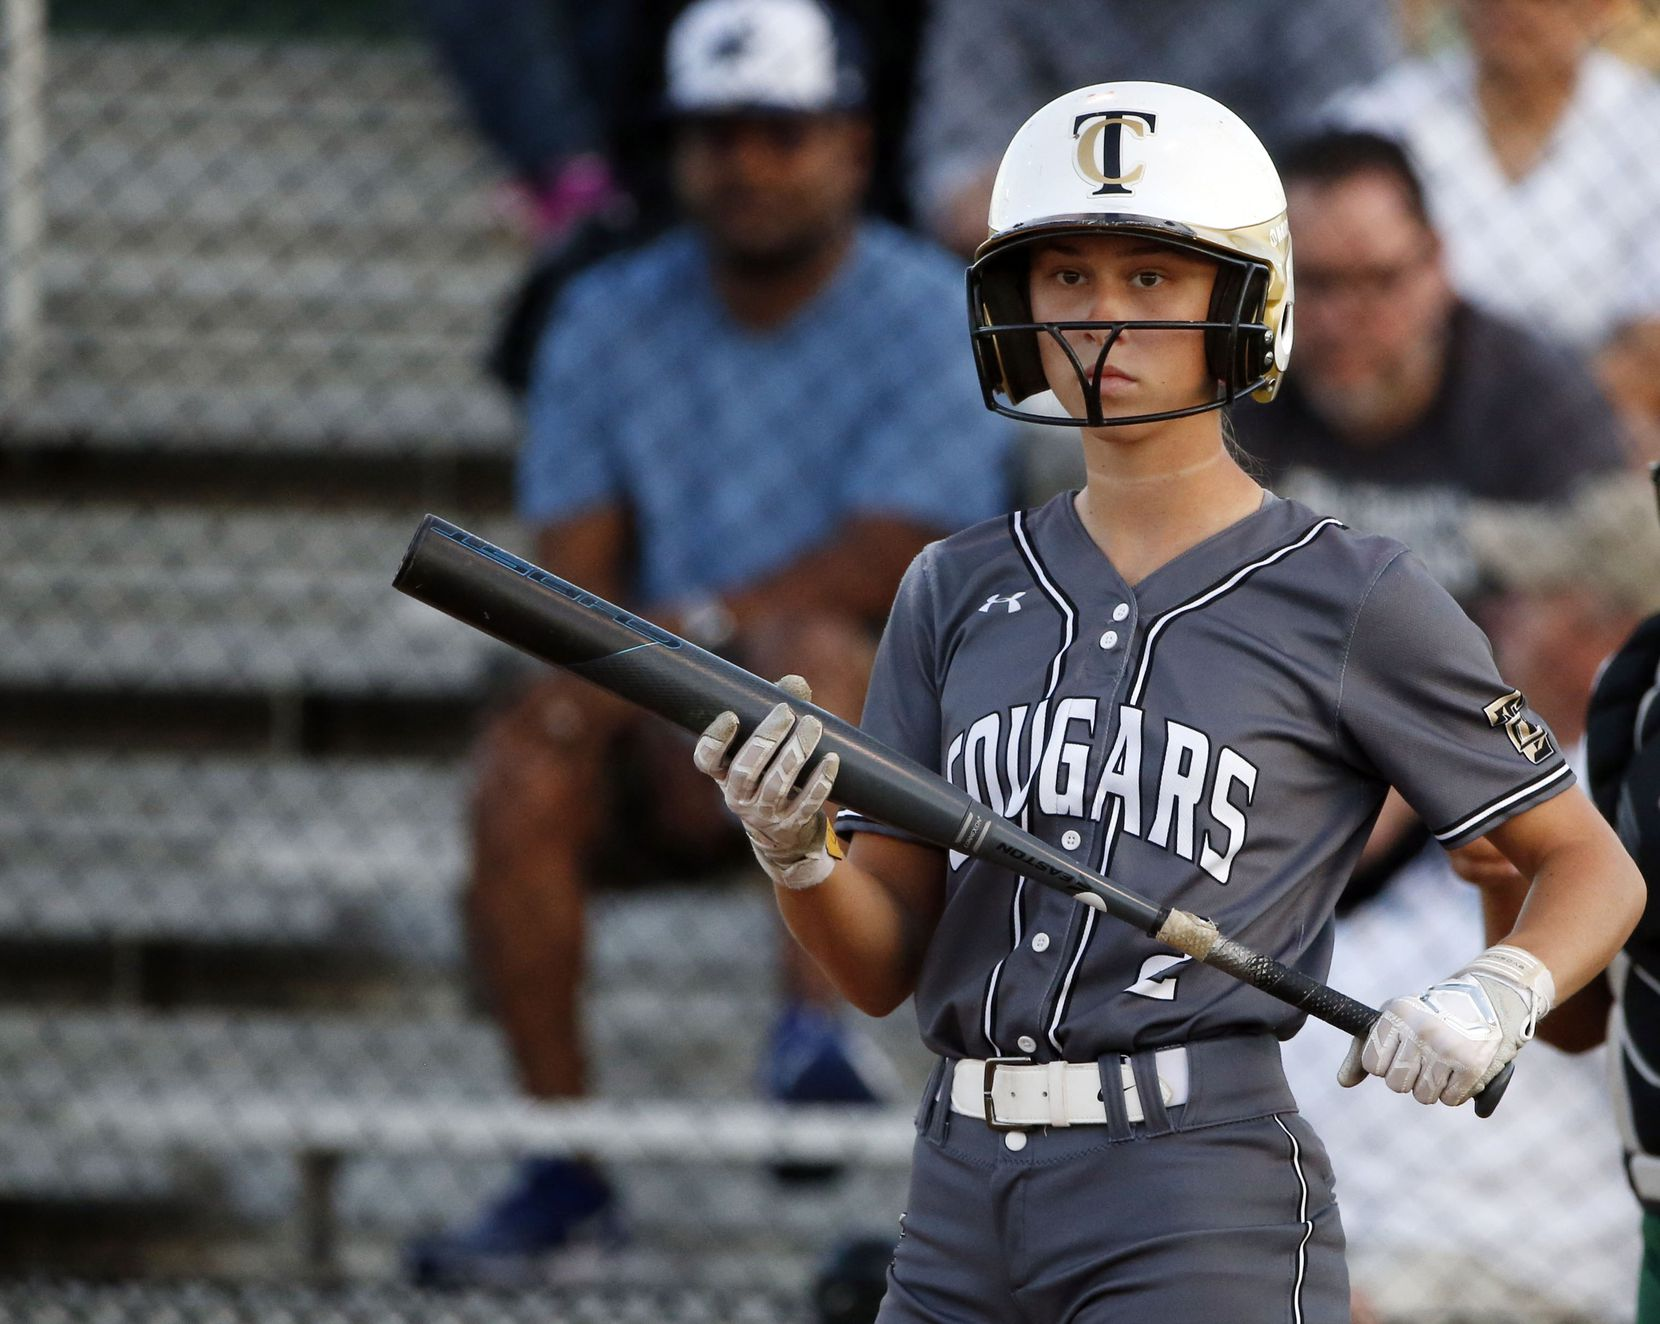 The Colony's Jacee Hamlin (2) bats against Birdville during game 2 of the Class 5A   Bi-District girls softball playoffs on April 26, 2019. (Michael Ainsworth/Special Contributor)